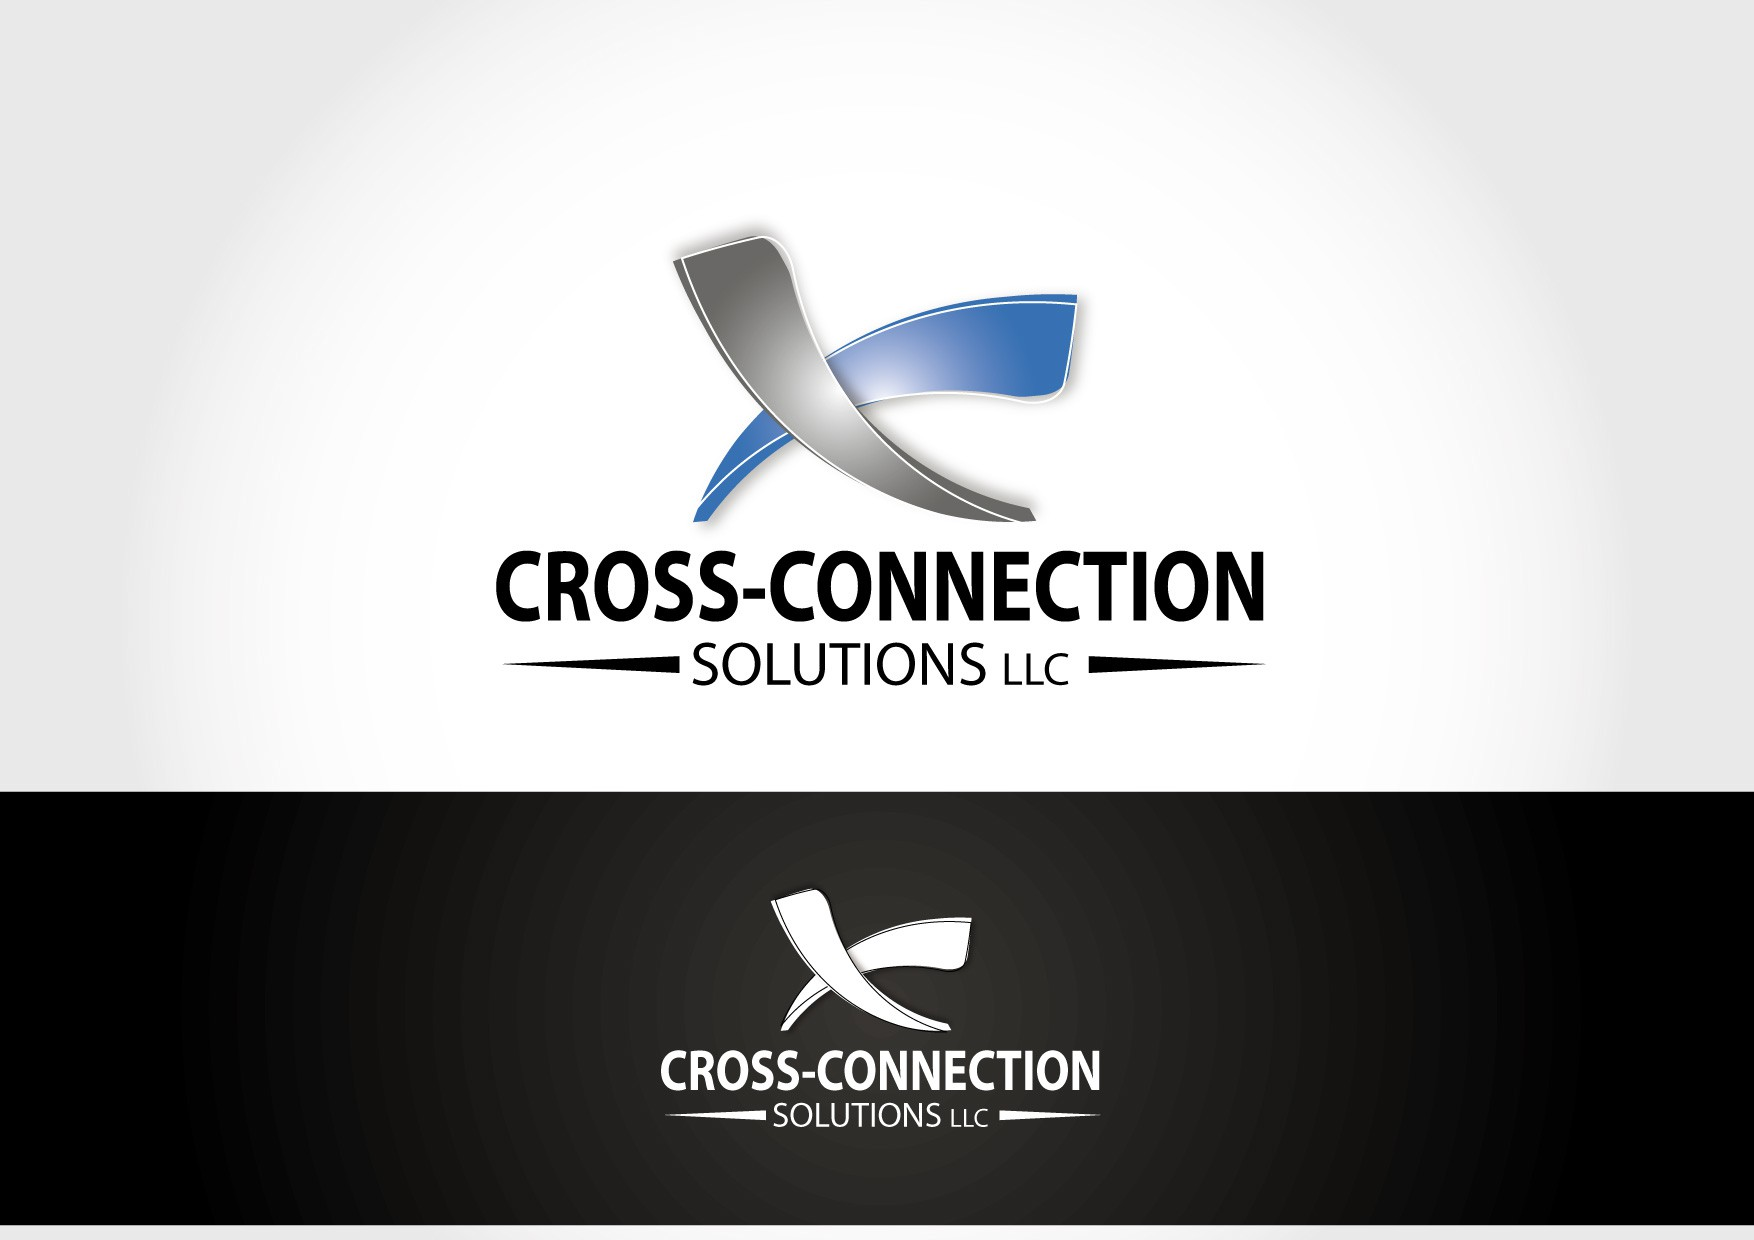 New logo wanted for Cross-Connection Solutions LLC